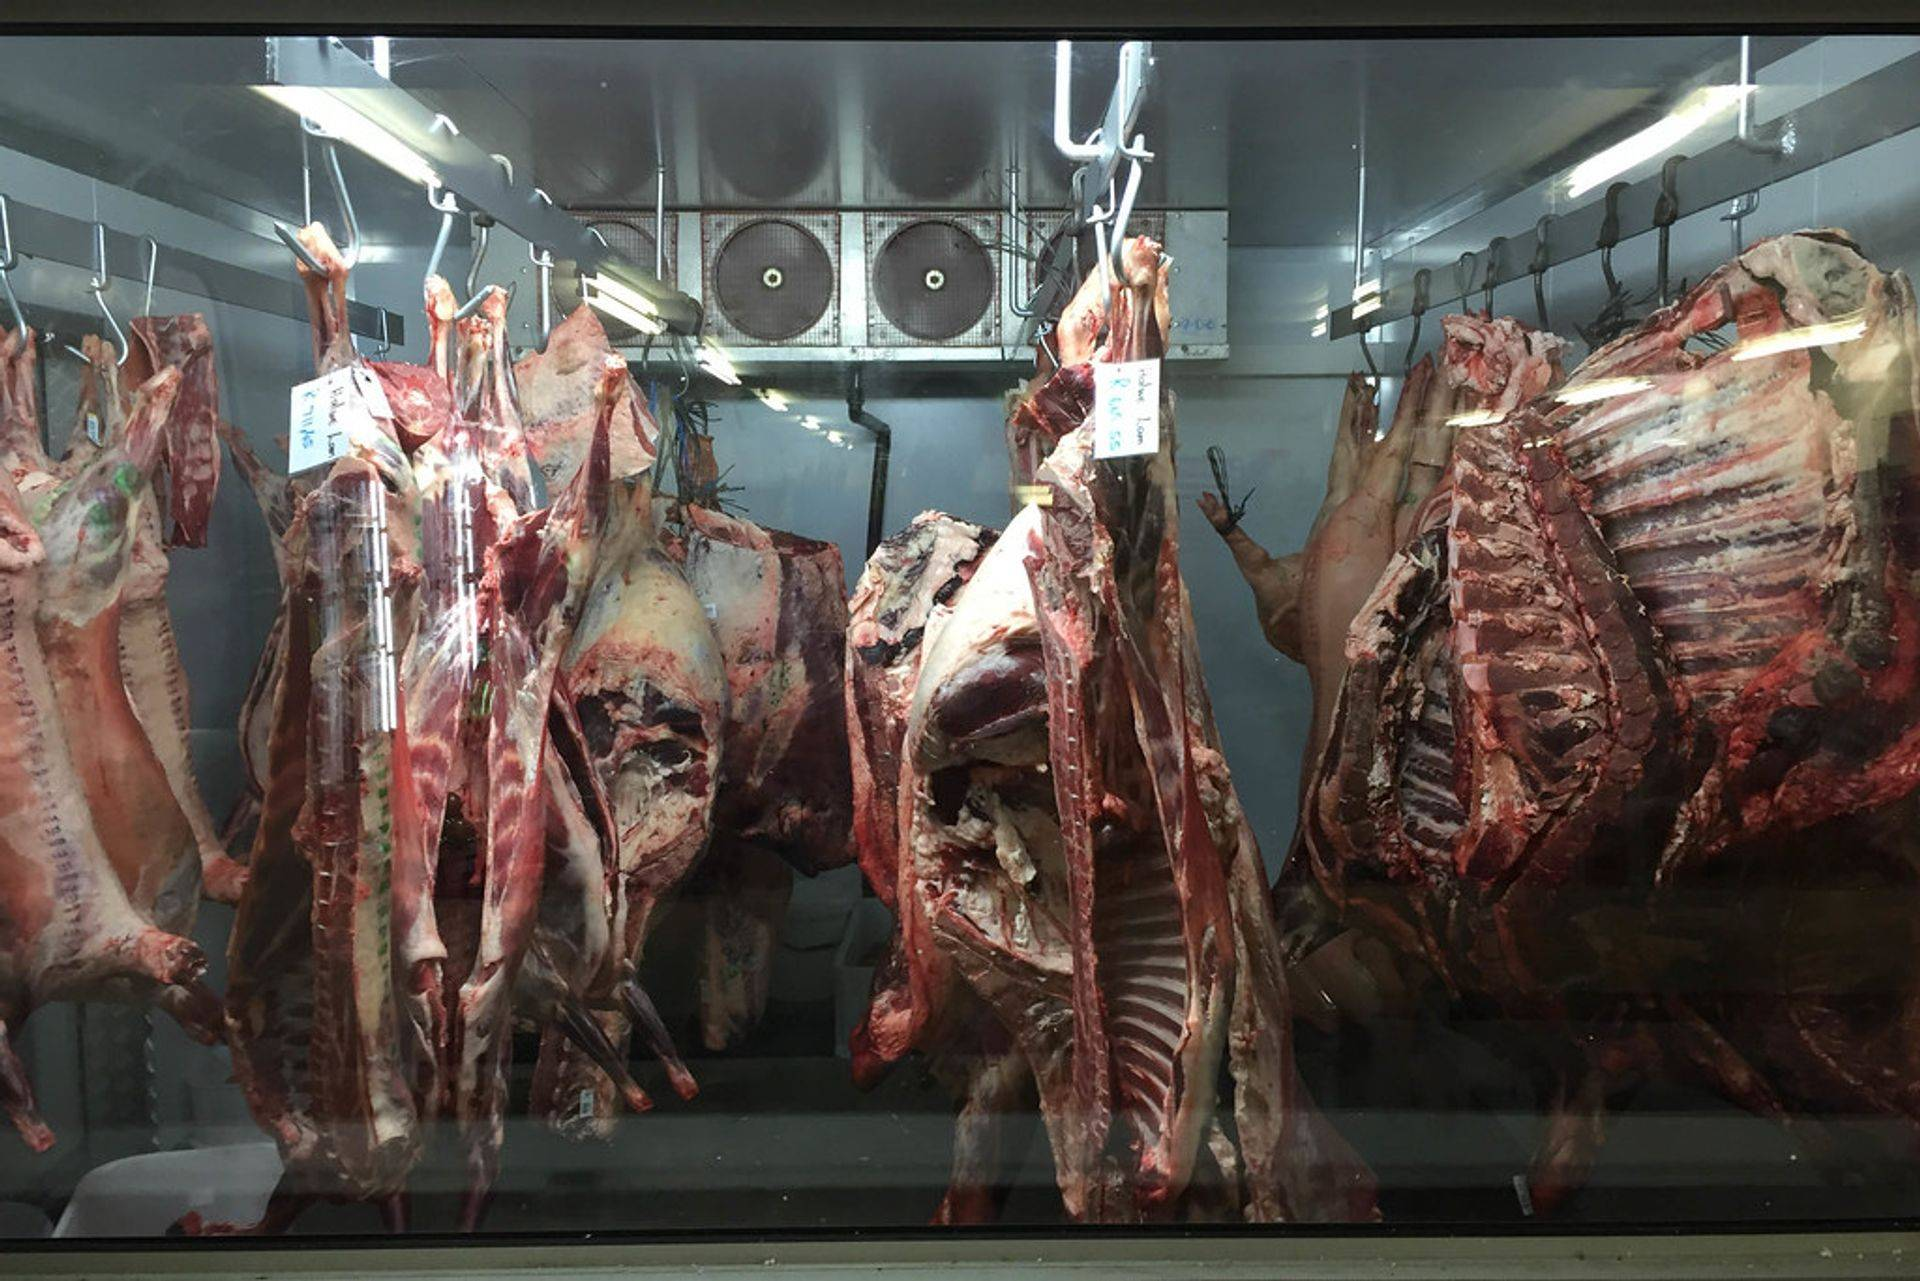 Global supplier of Lamb/Goat Meat & Offals.